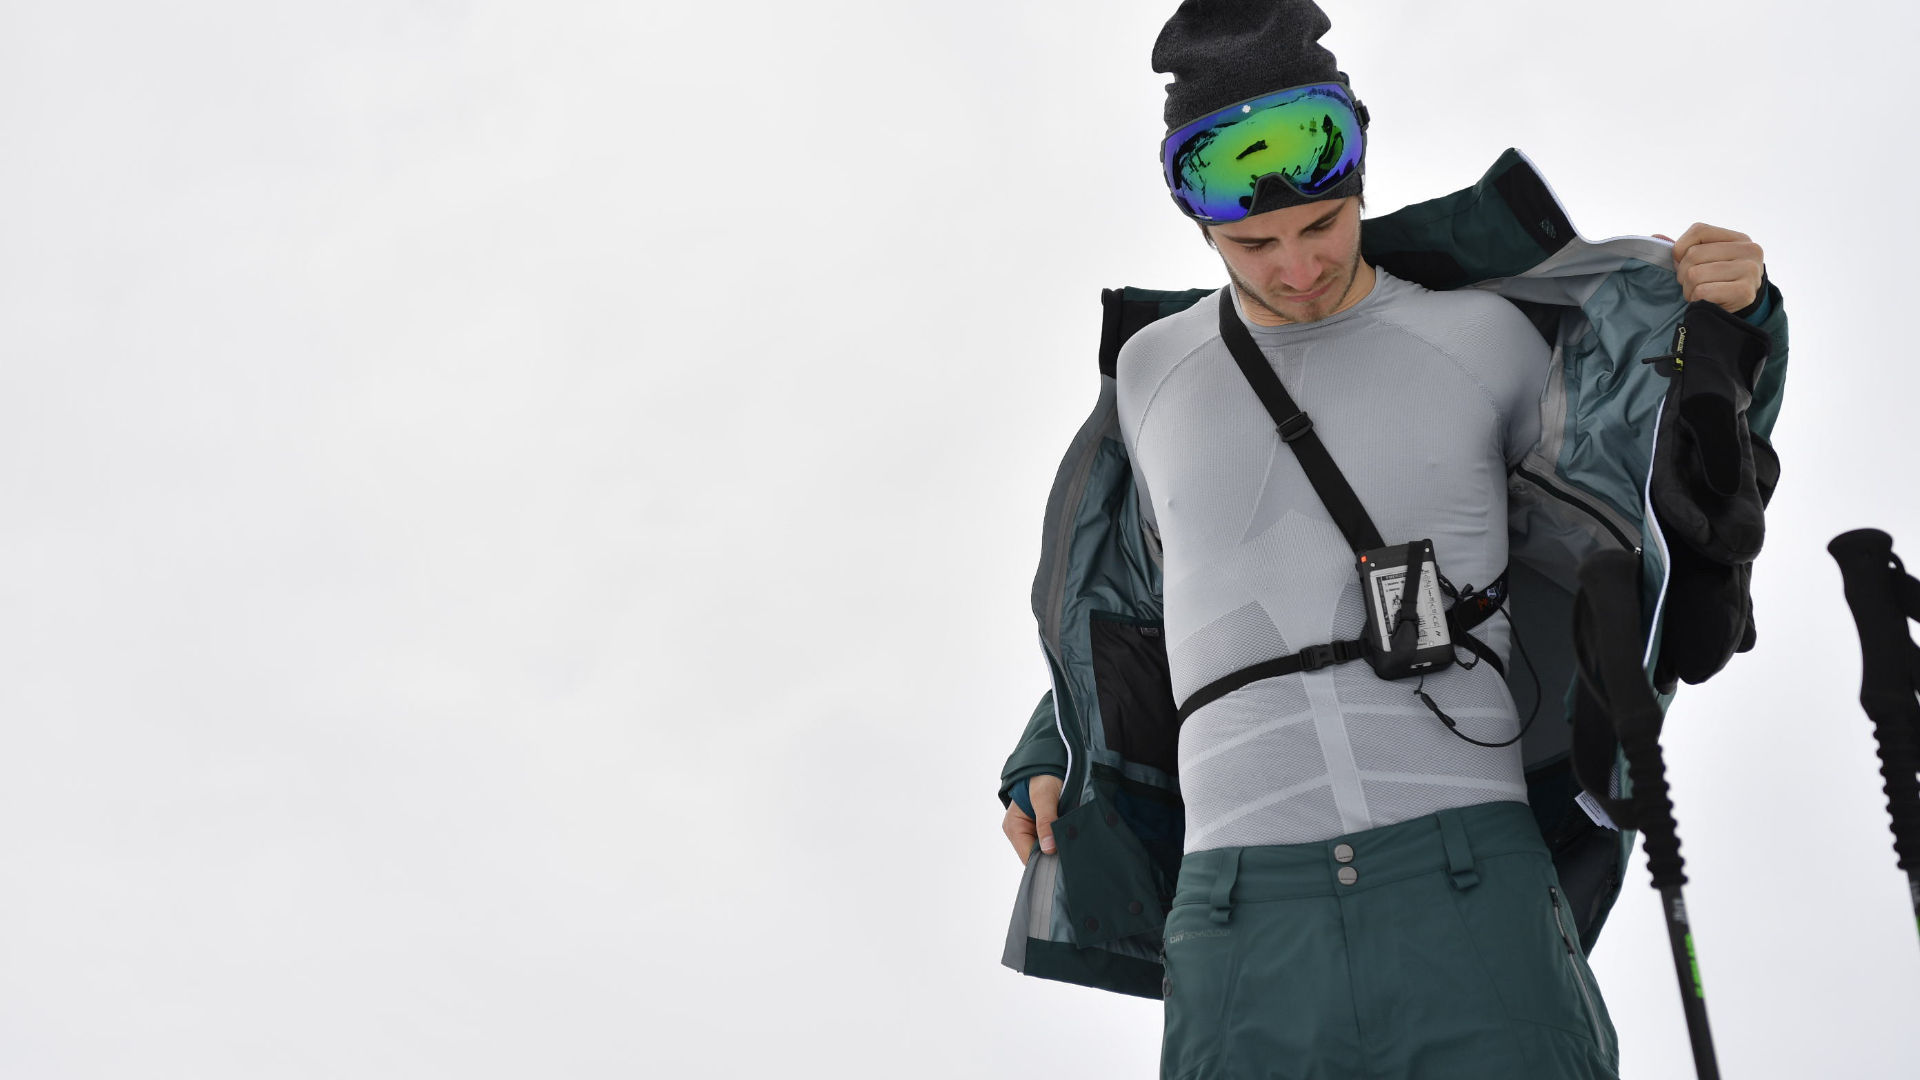 A skier taking off his jacket to show his synthetic base layer and transceiver